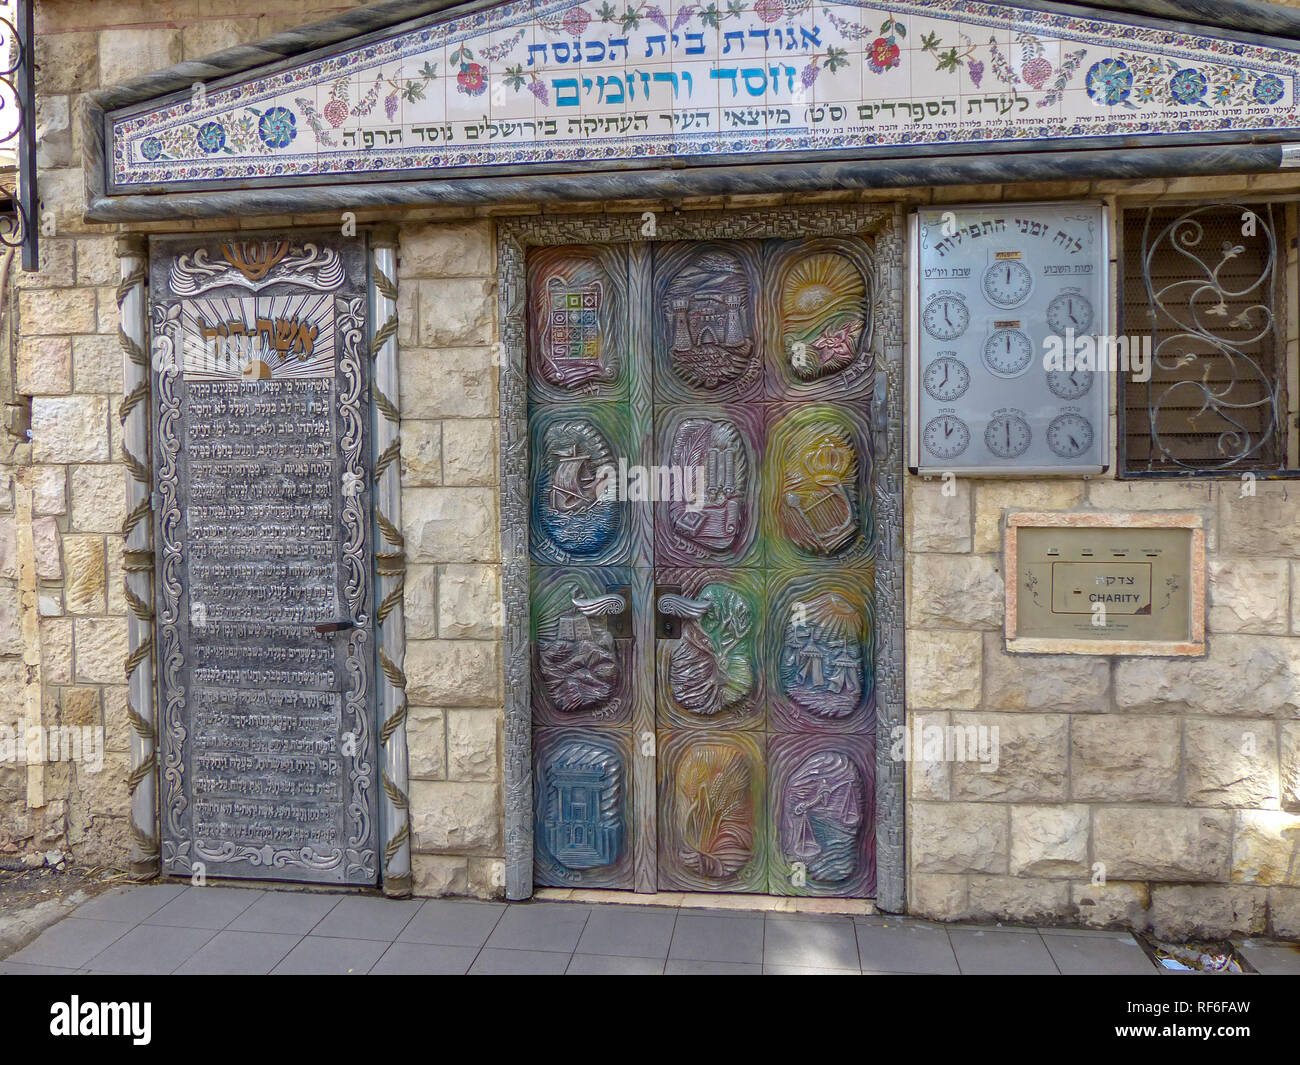 The tribes of Israel on a door of the Hesed and Rahamim Synagogue, Jerusalem, Israel, - Stock Image